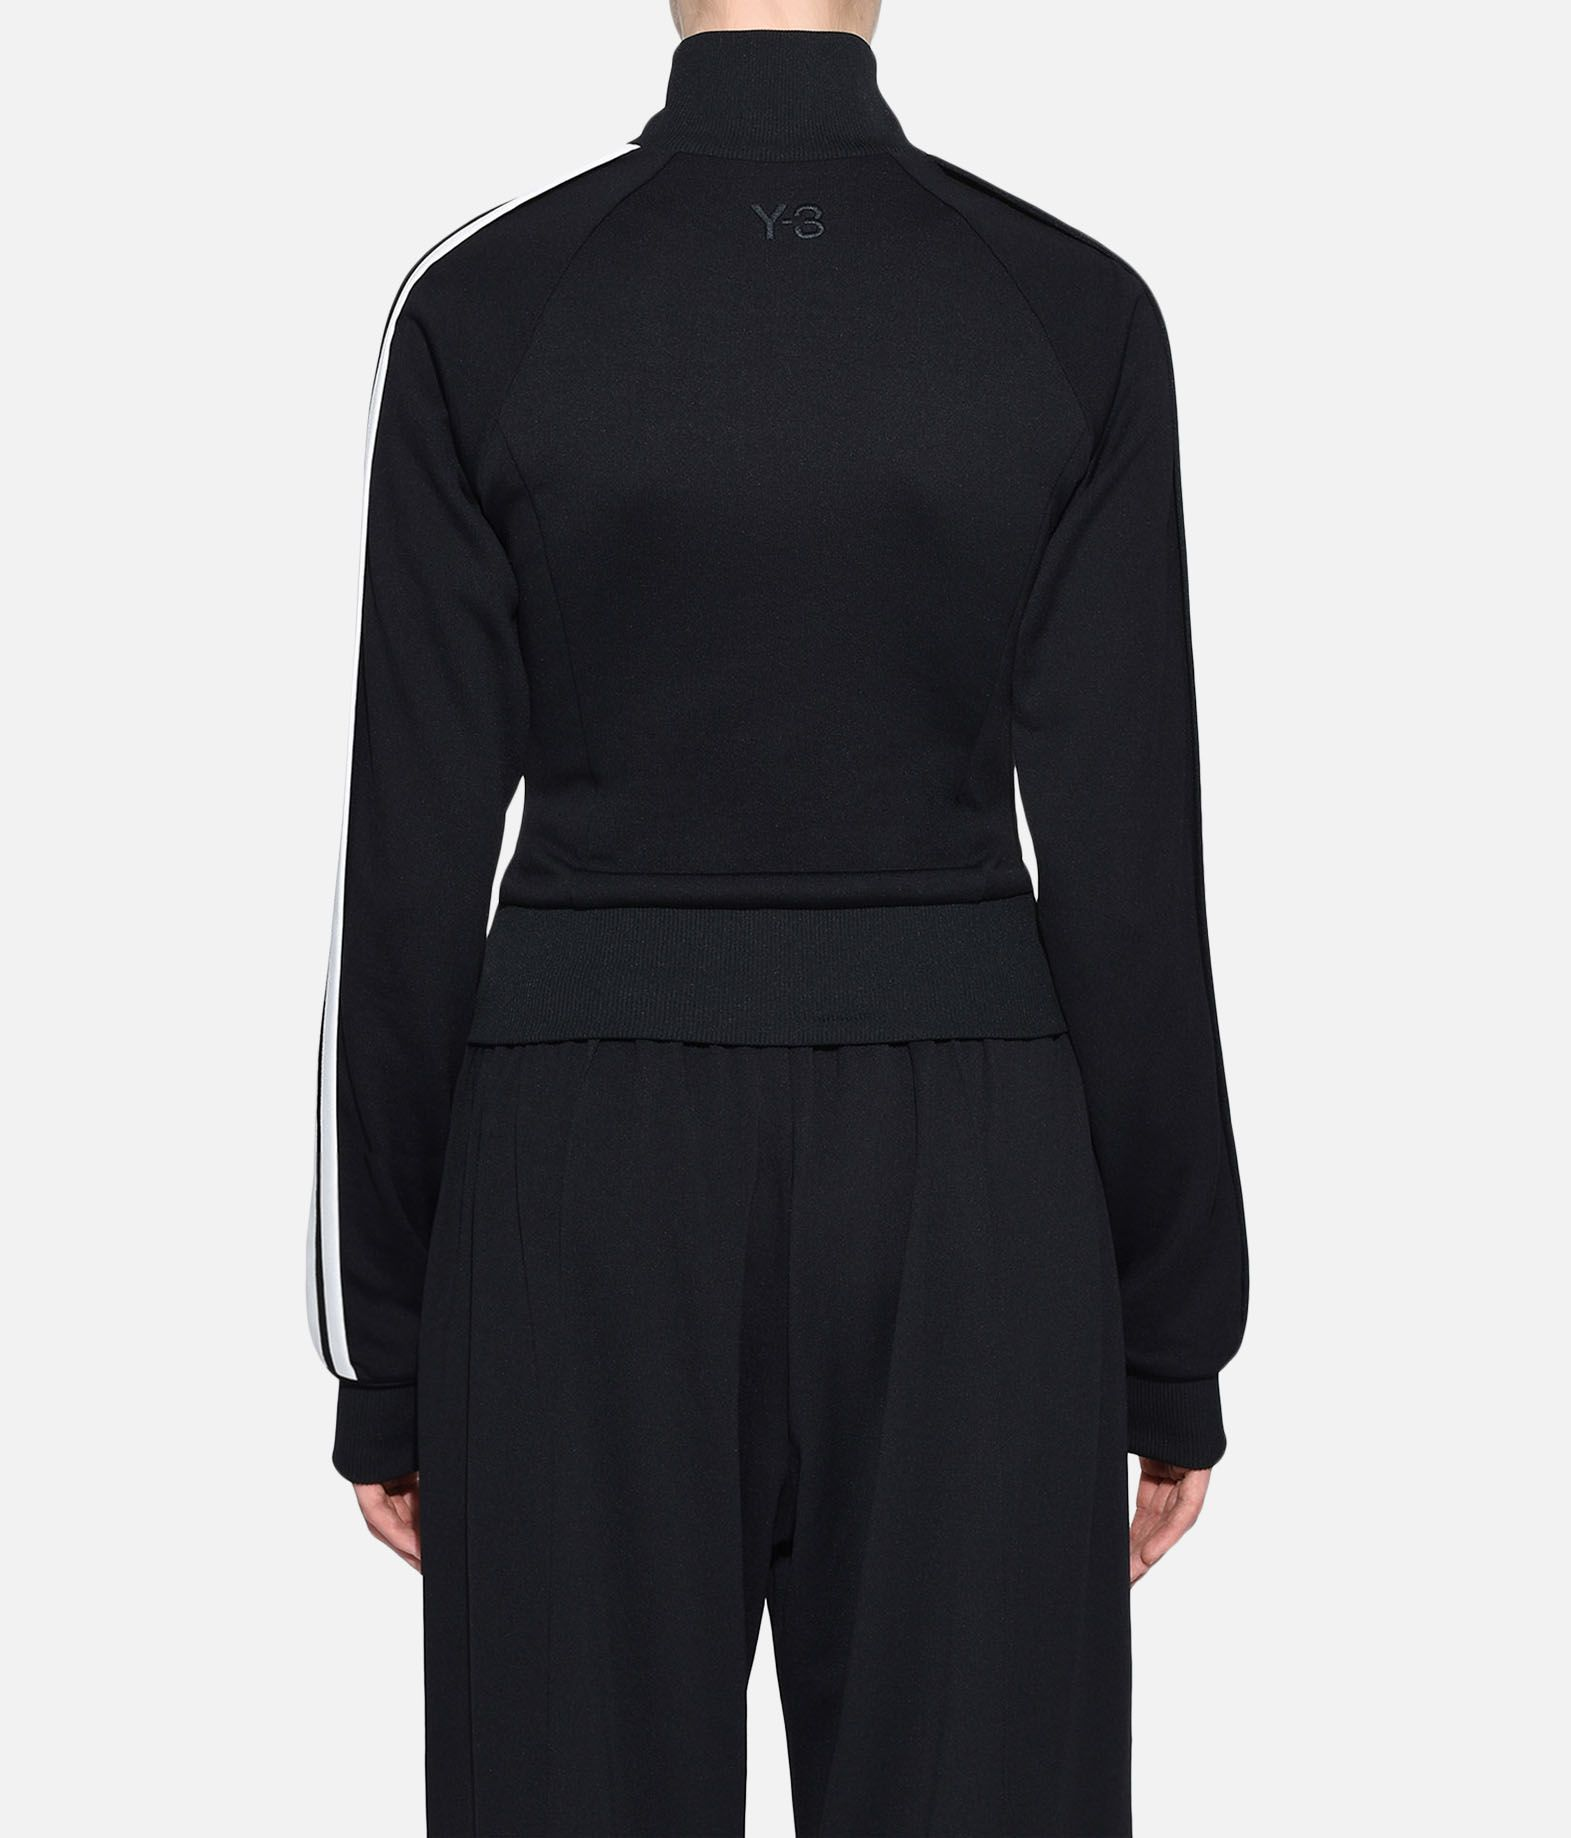 Y-3 Y-3 3-Stripes Selvedge Matte Track Jacket Track top Woman d